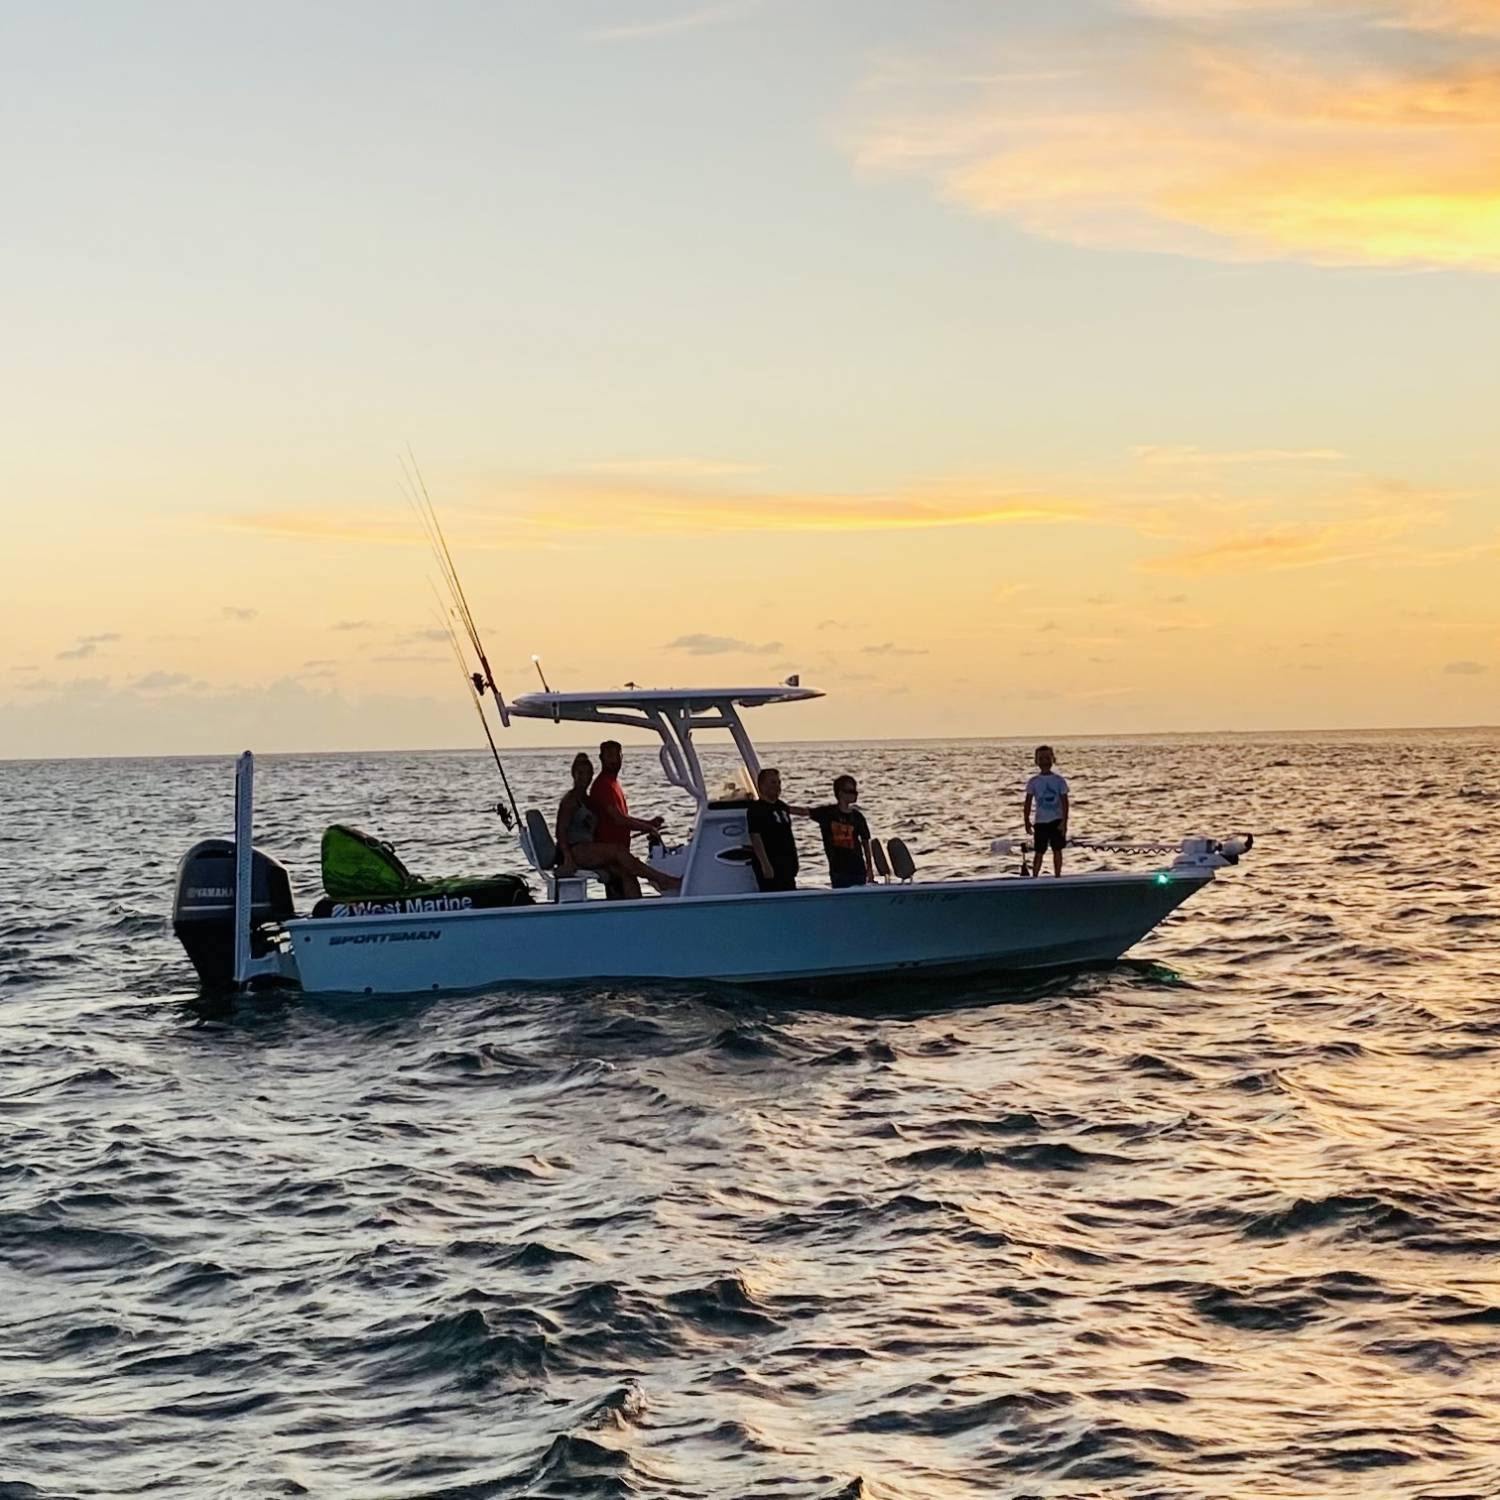 Title: Sunsets - On board their Sportsman Masters 247 Bay Boat - Location: Marathon, Fl. Participating in the Photo Contest #SportsmanJuly2021